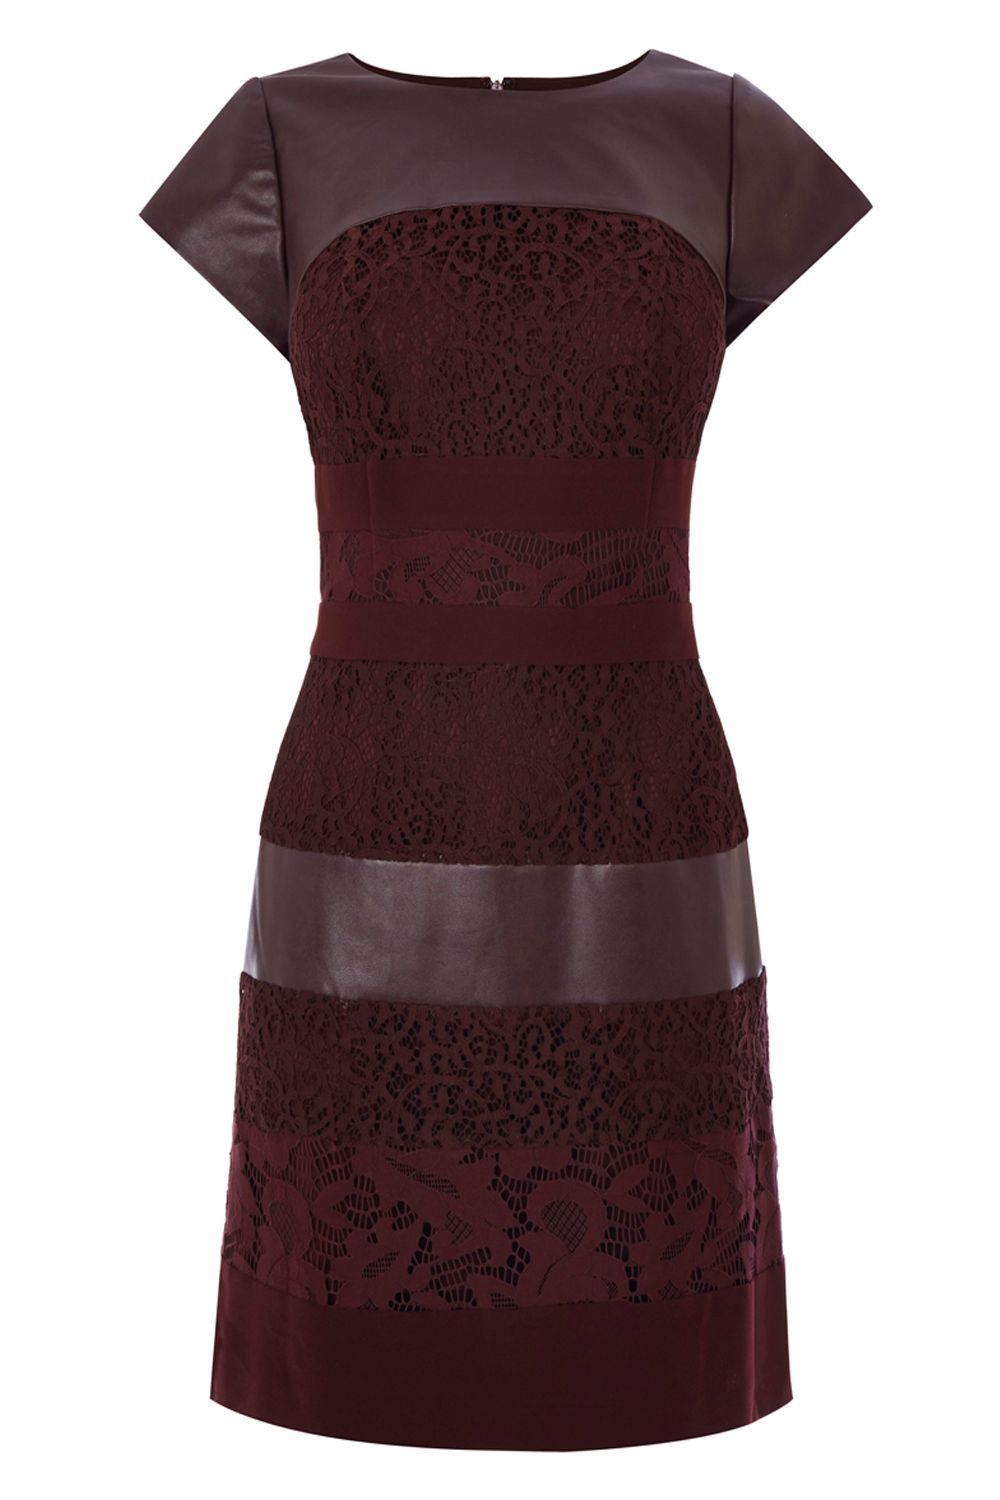 Loradi Lace Panel Dress, Wine - style: shift; neckline: round neck; sleeve style: capped; fit: tailored/fitted; pattern: plain; predominant colour: burgundy; occasions: evening, occasion; length: just above the knee; fibres: polyester/polyamide - 100%; sleeve length: short sleeve; pattern type: fabric; texture group: other - light to midweight; embellishment: lace; season: a/w 2015